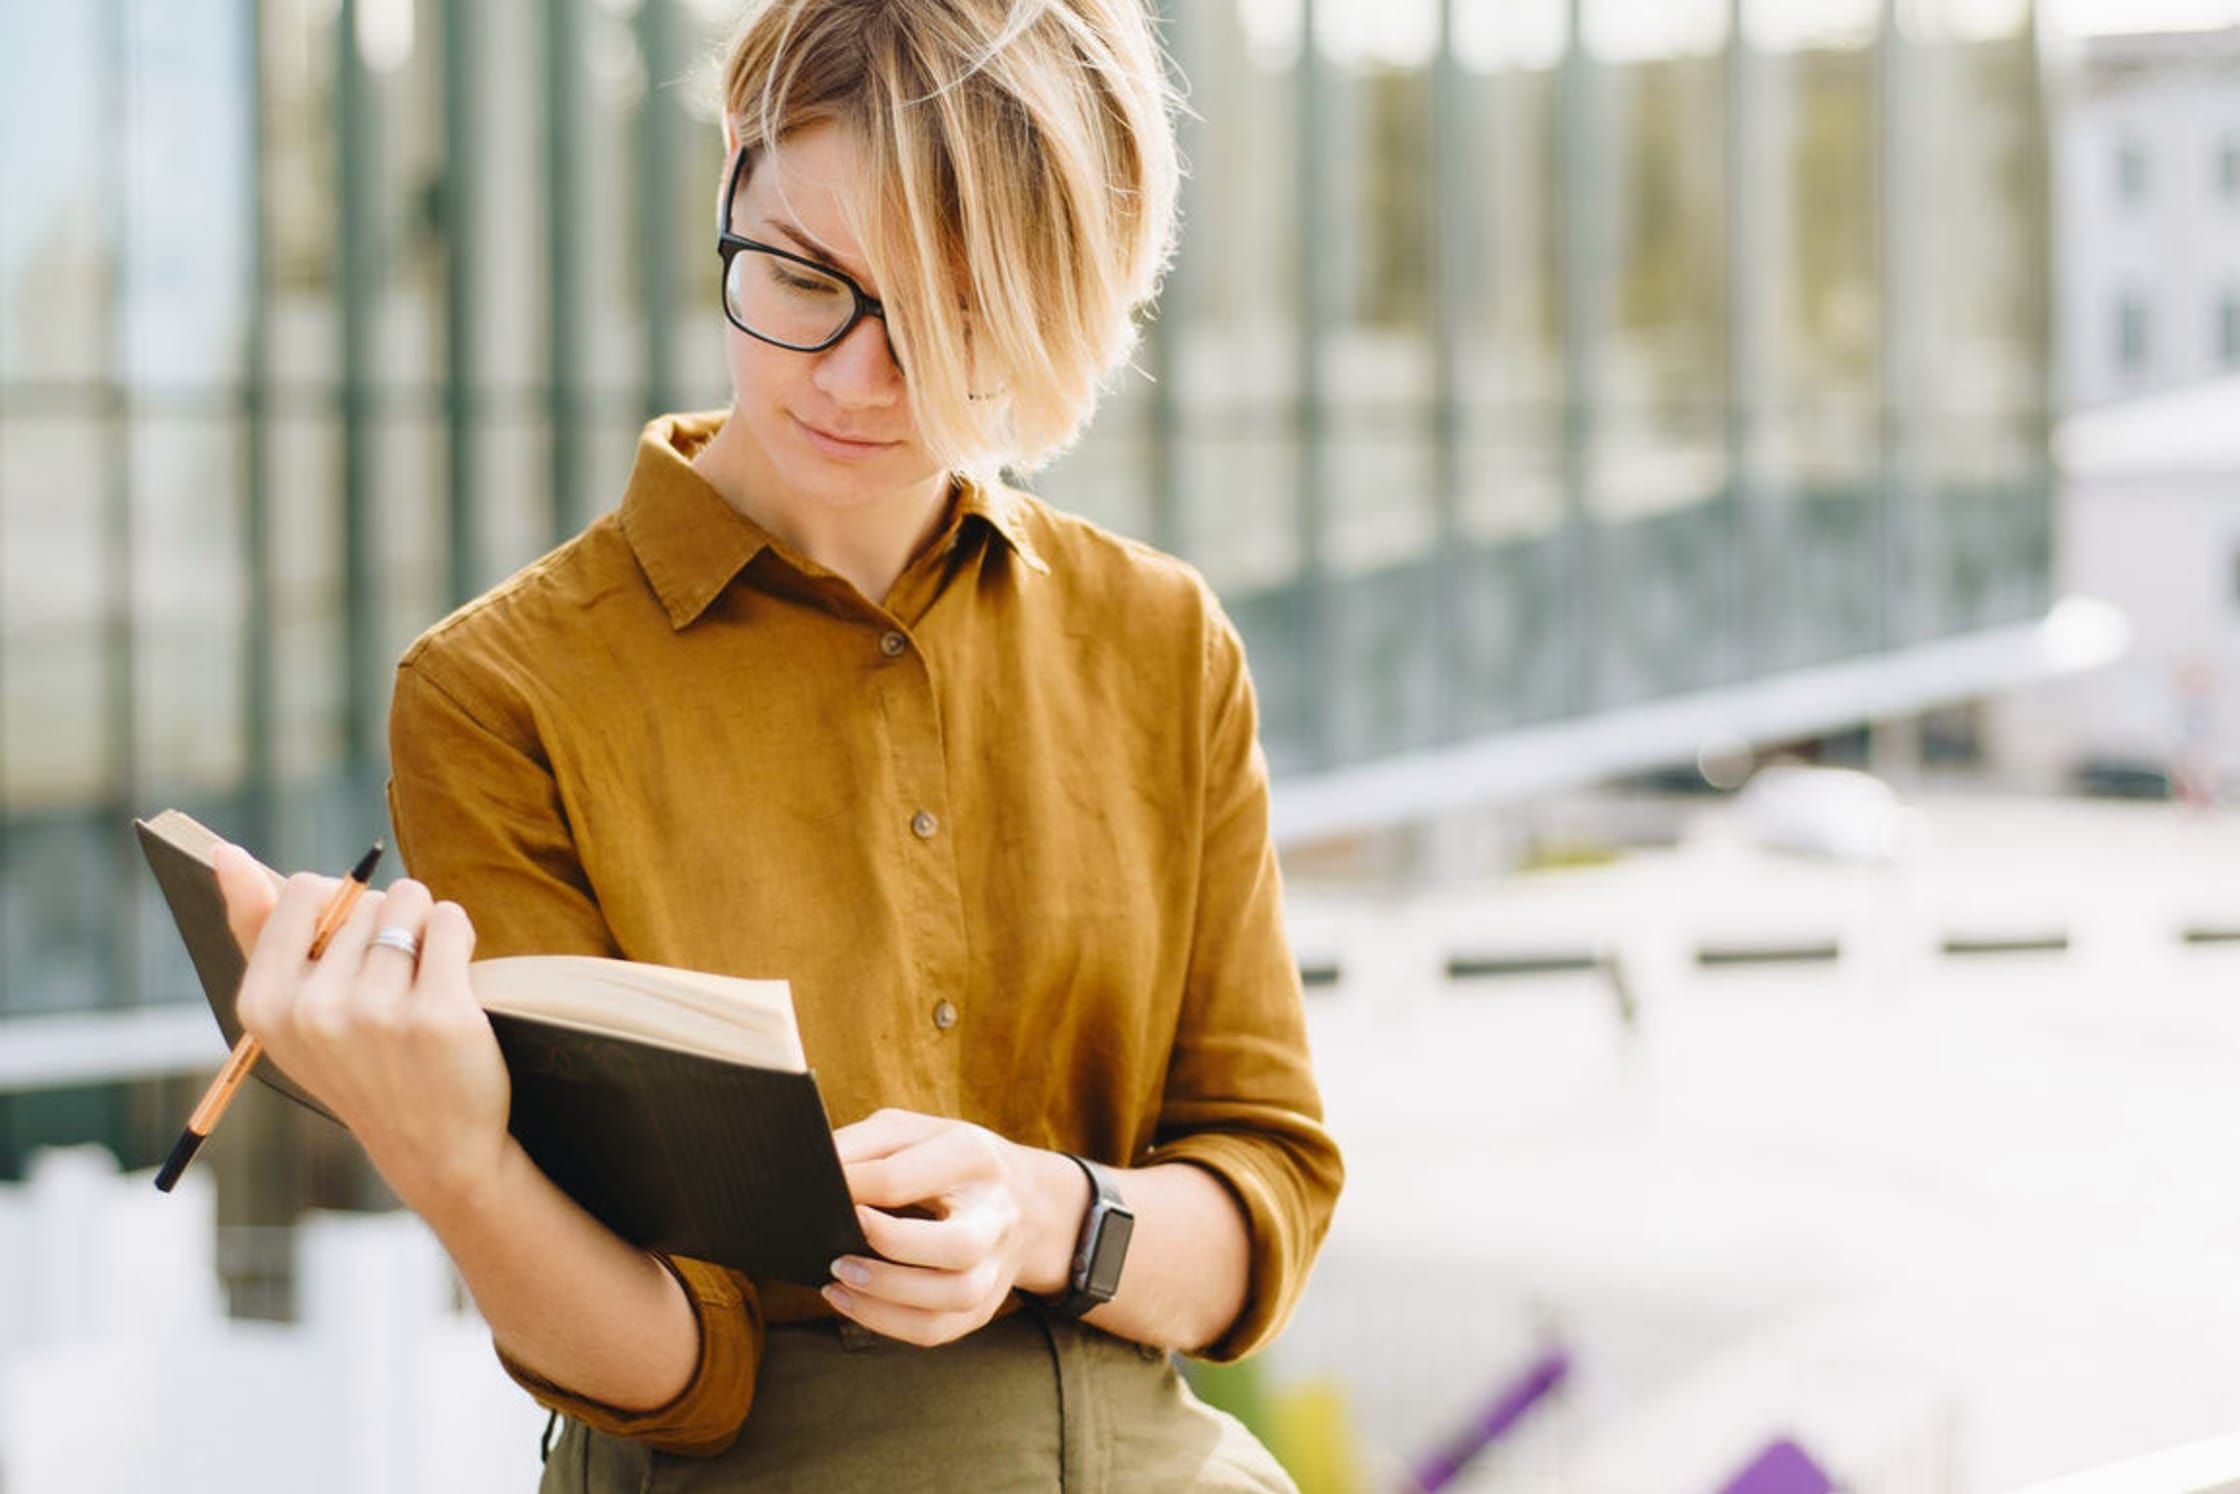 The 6 Books This Clinical Psychologist Has All Her Students Read To Understand The Human Spirit Clinical Psychologist Psychologist Books Psychologist